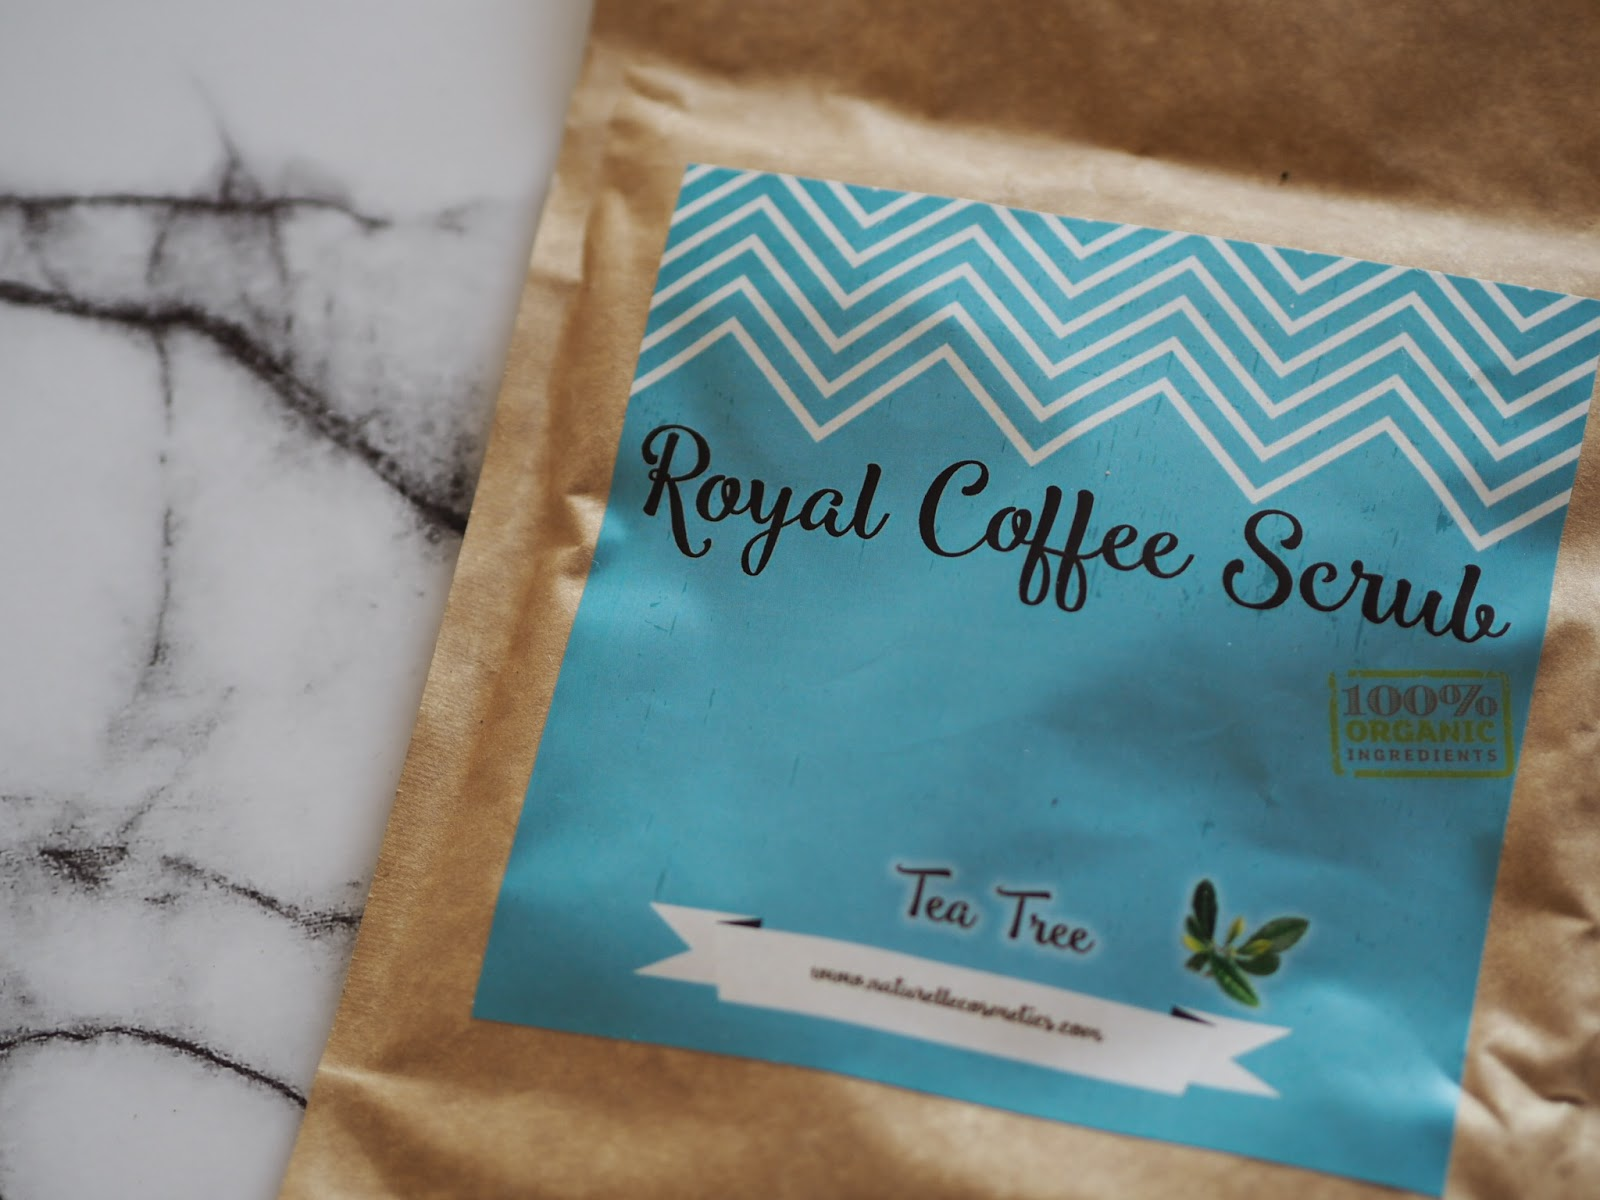 Royal Coffee Scrub Tee Tree